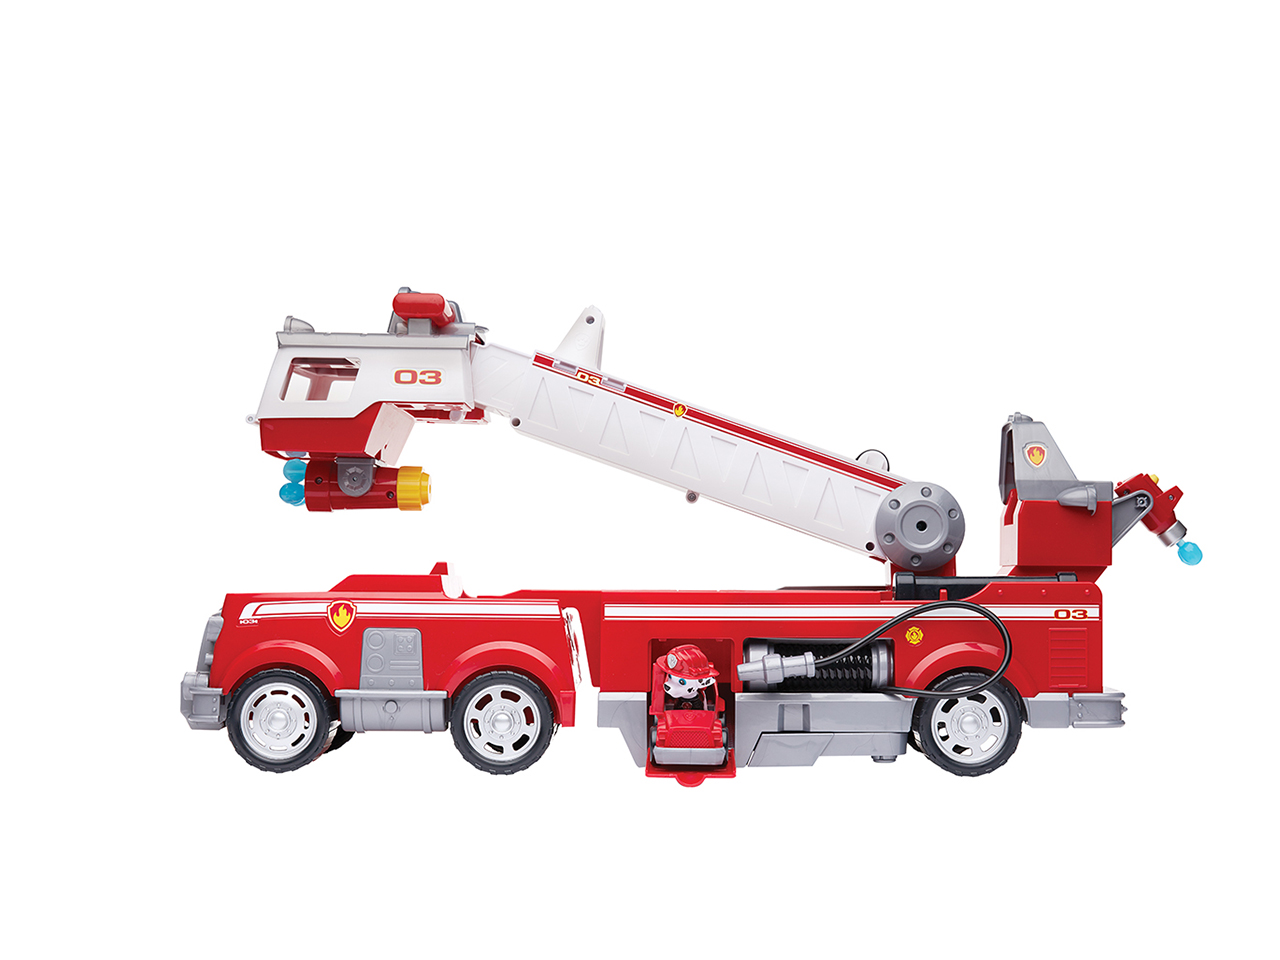 Paw Patrol Ultimate Rescue Fire Truck: A toy firetruck featuring Paw Patrol's Marshall